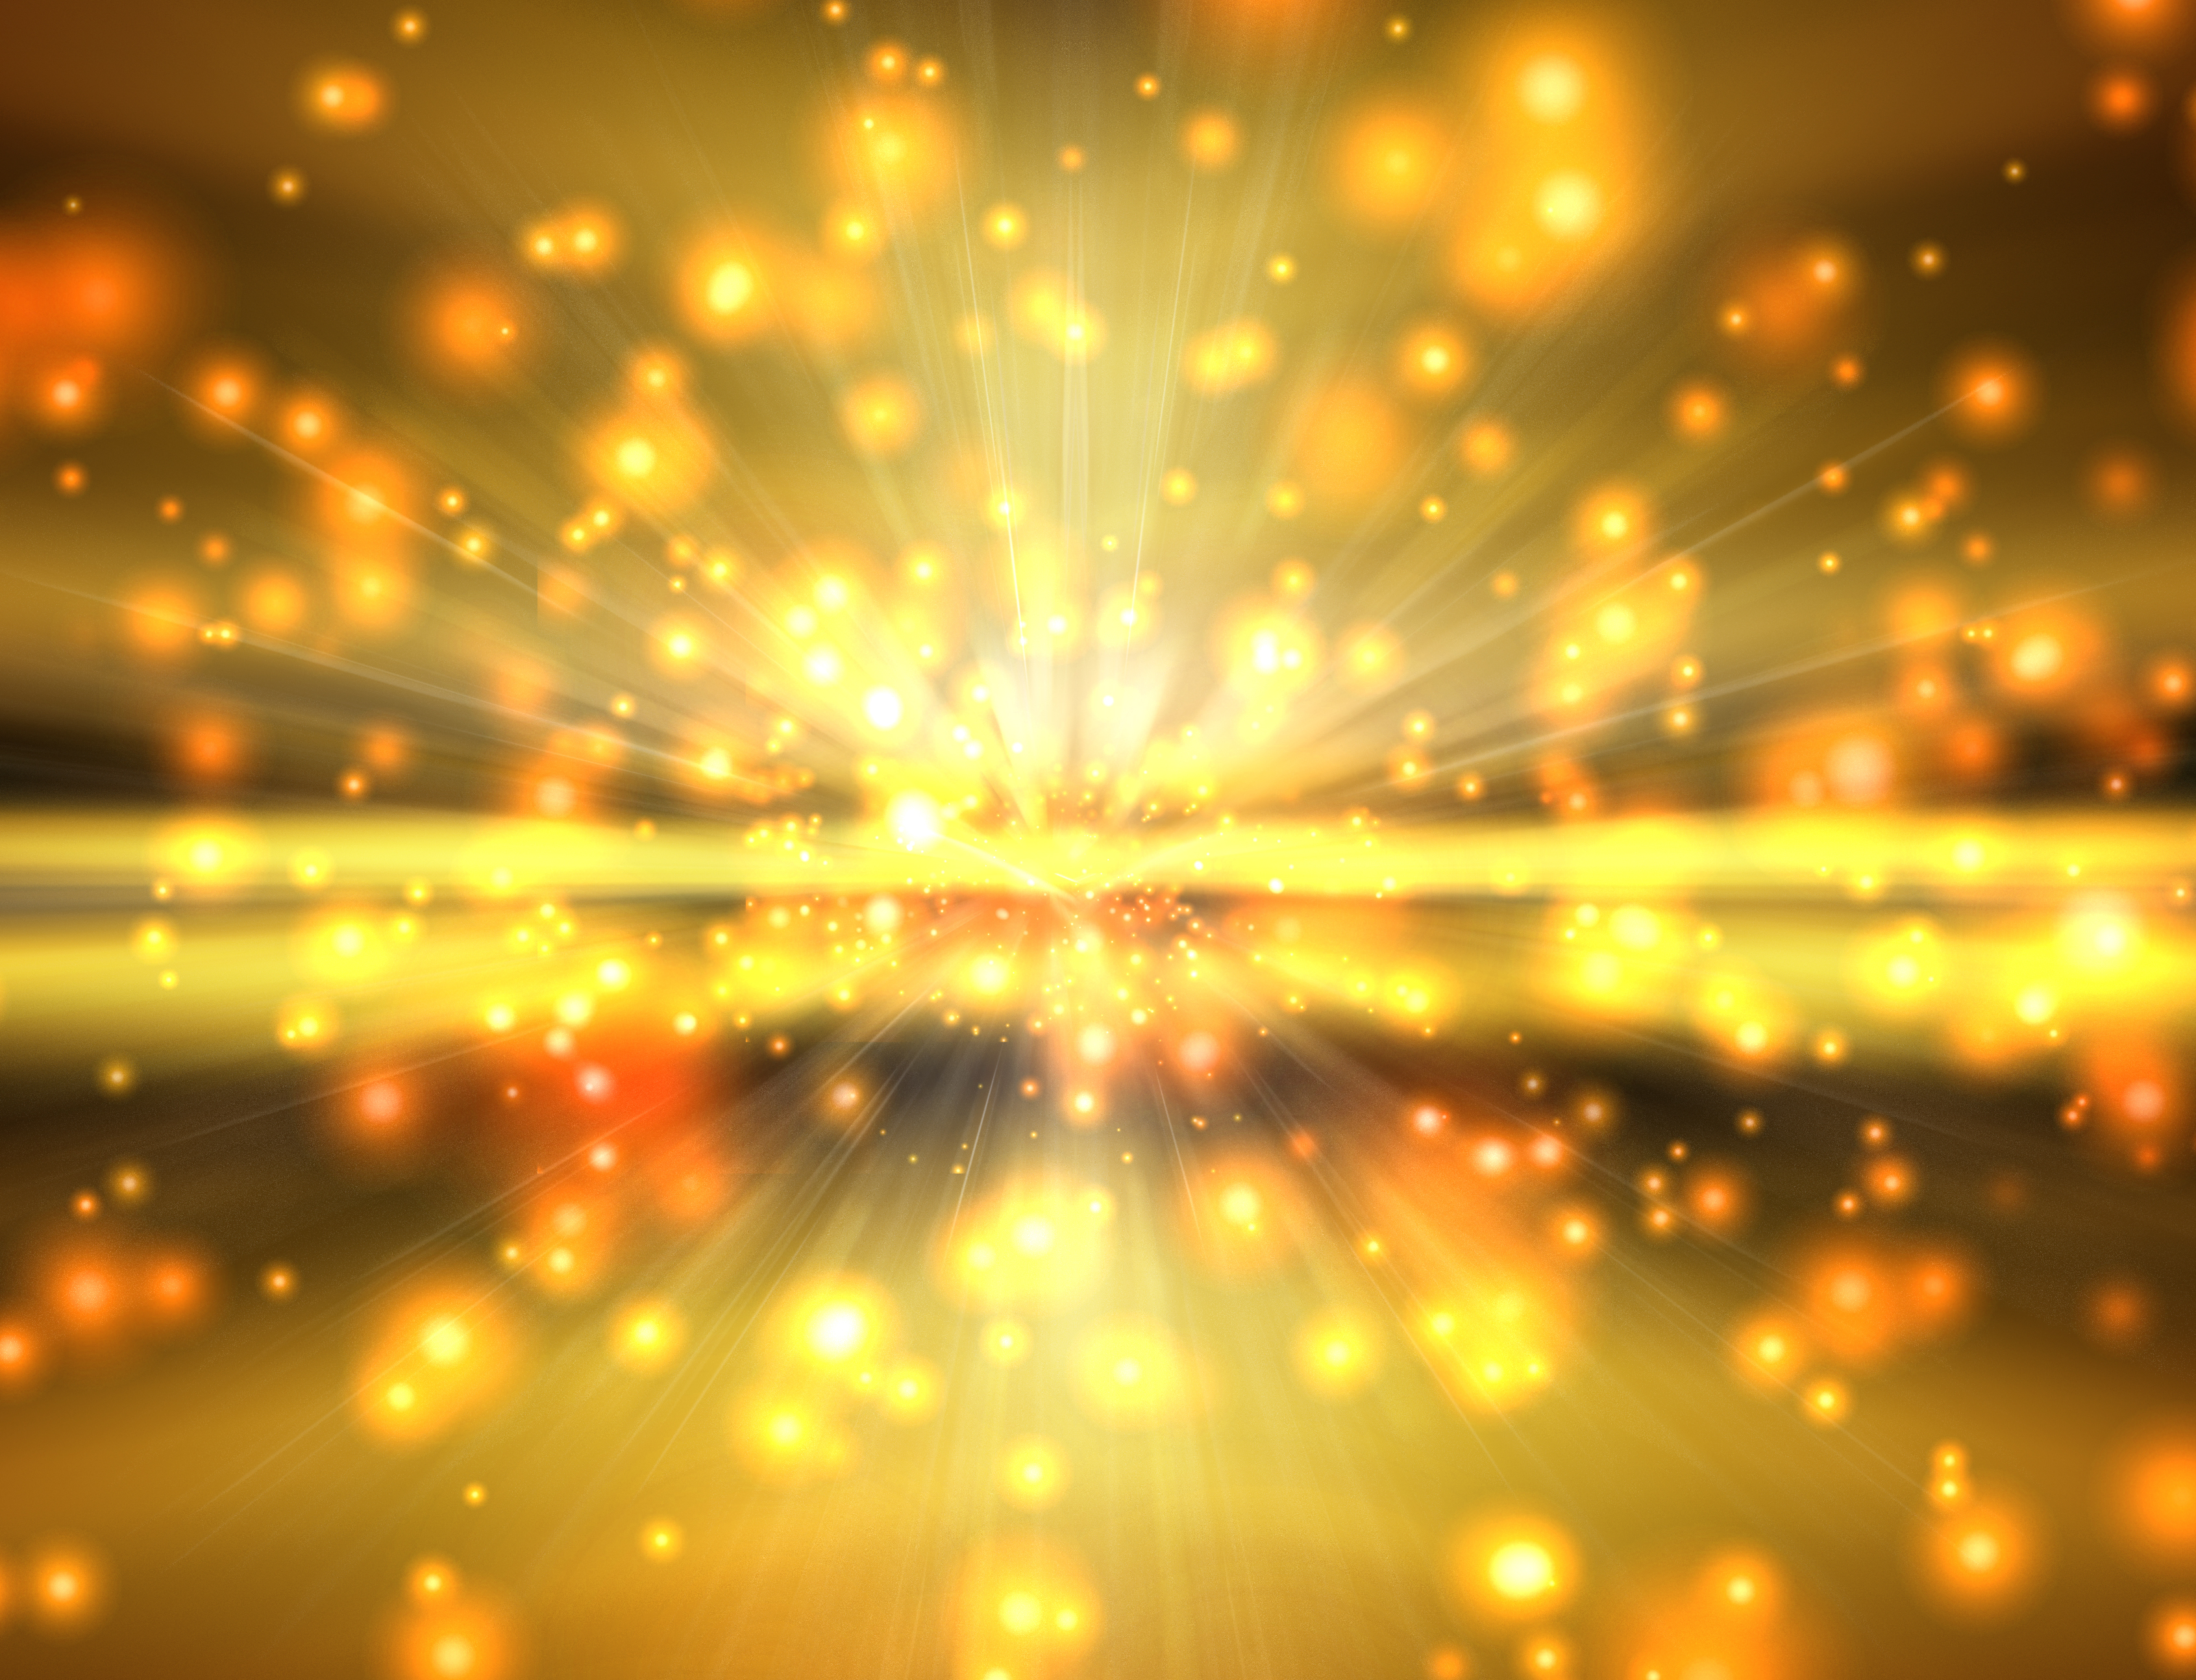 Weighing single molecules with light